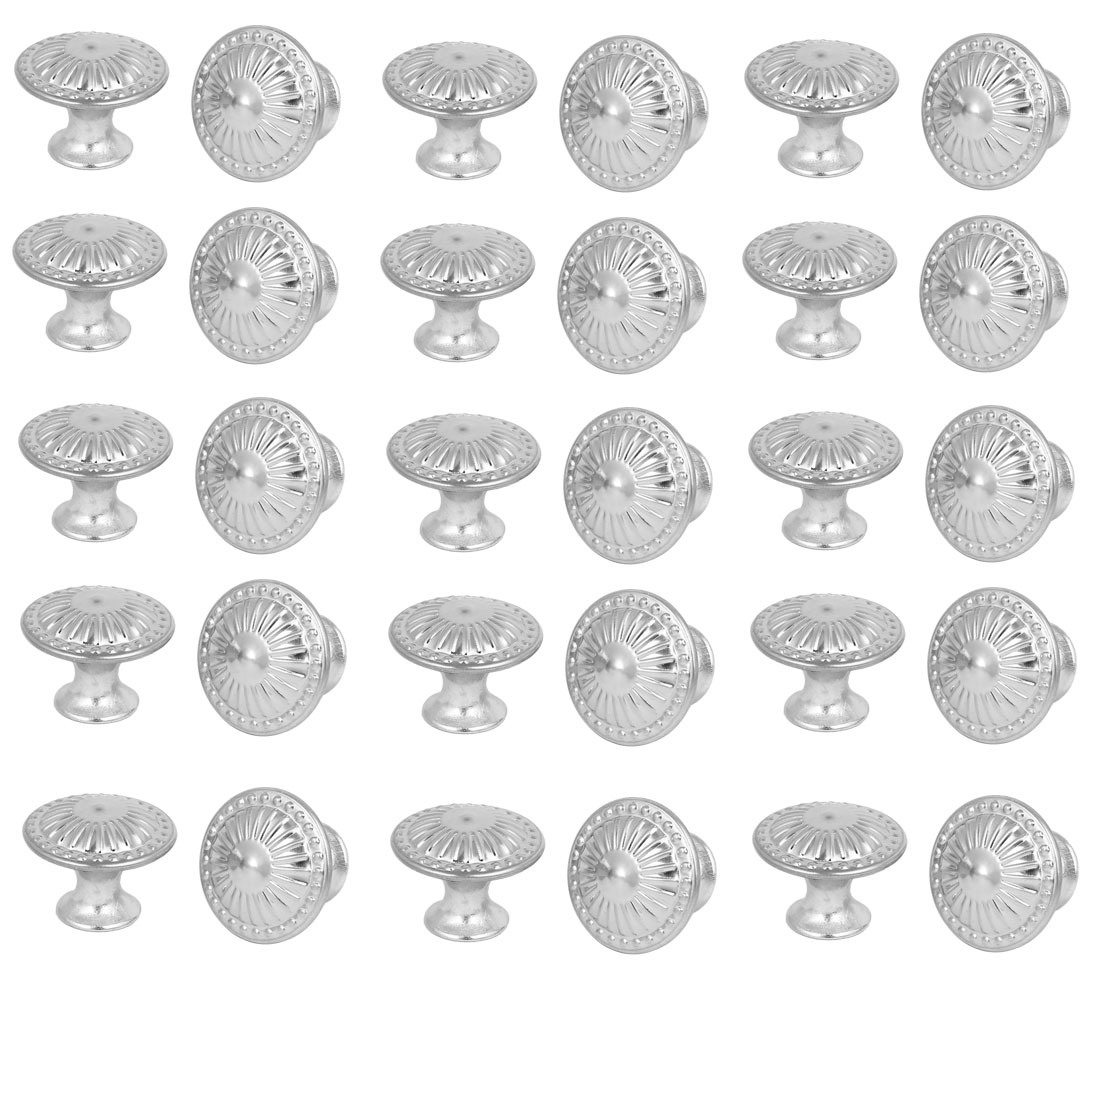 Wardrobe Cabinet Flower Printed Round Pull Knobs Silver Tone 28mmx22mm 30pcs